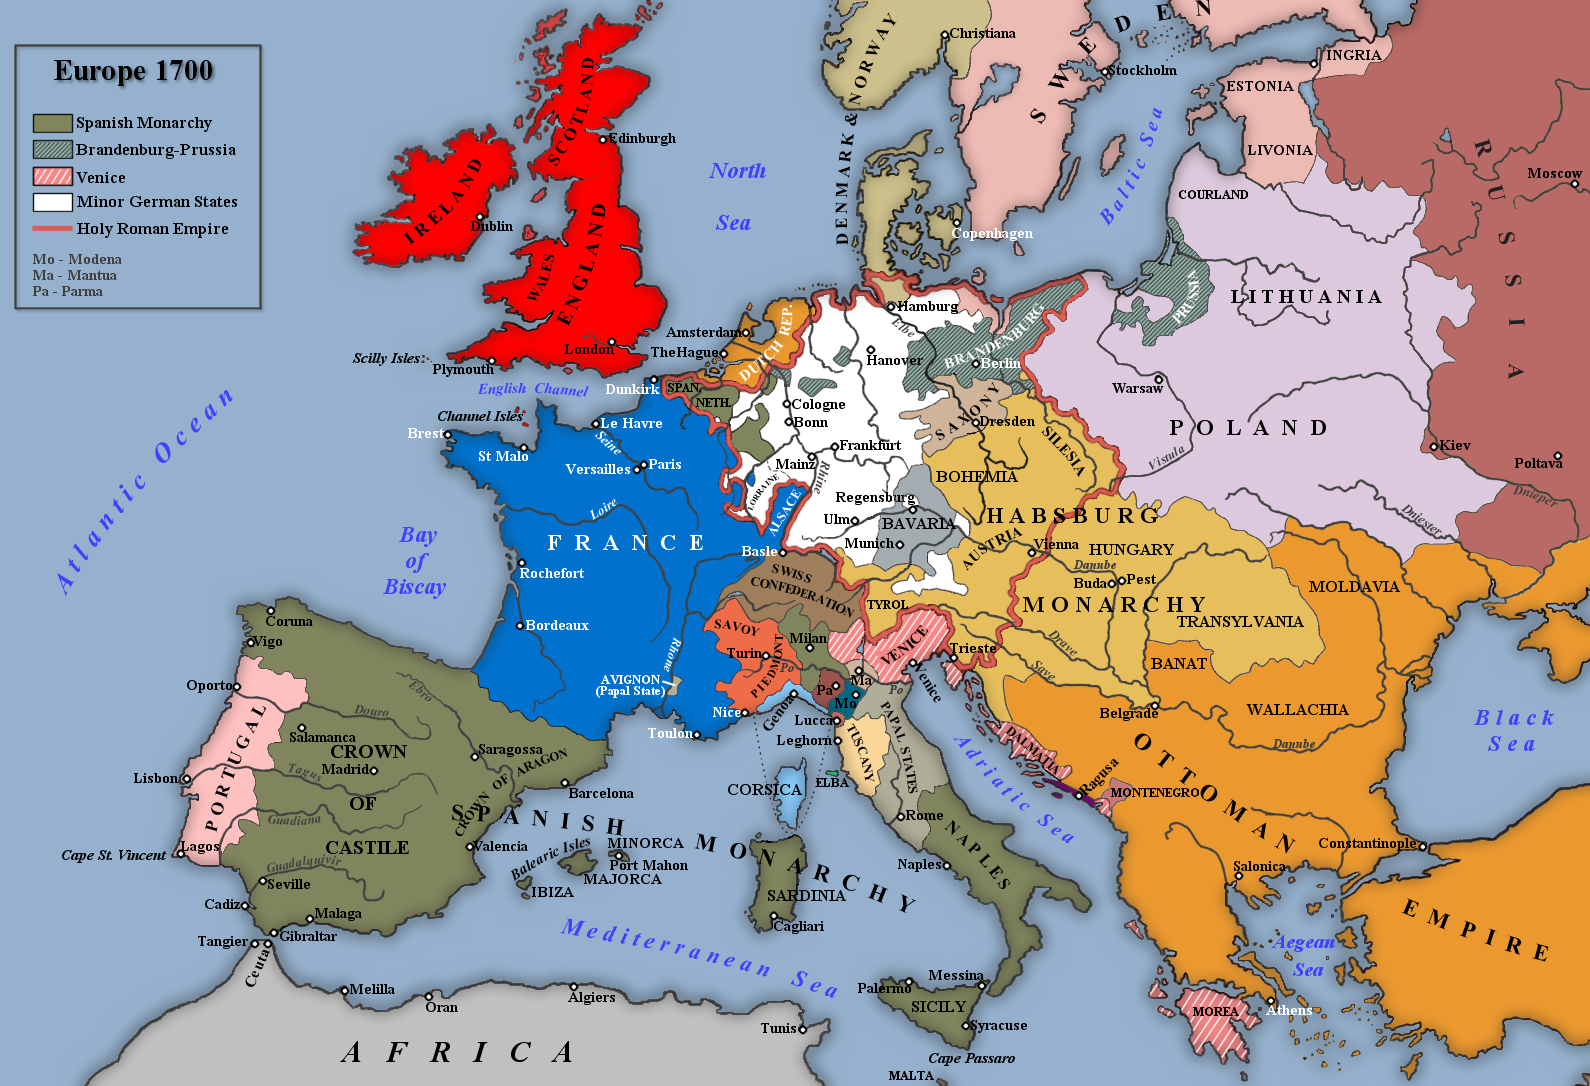 was louis xiv merely concerned la gloire in his foreign english map of europe 1700 based an image in g m trevelyan s england under queen